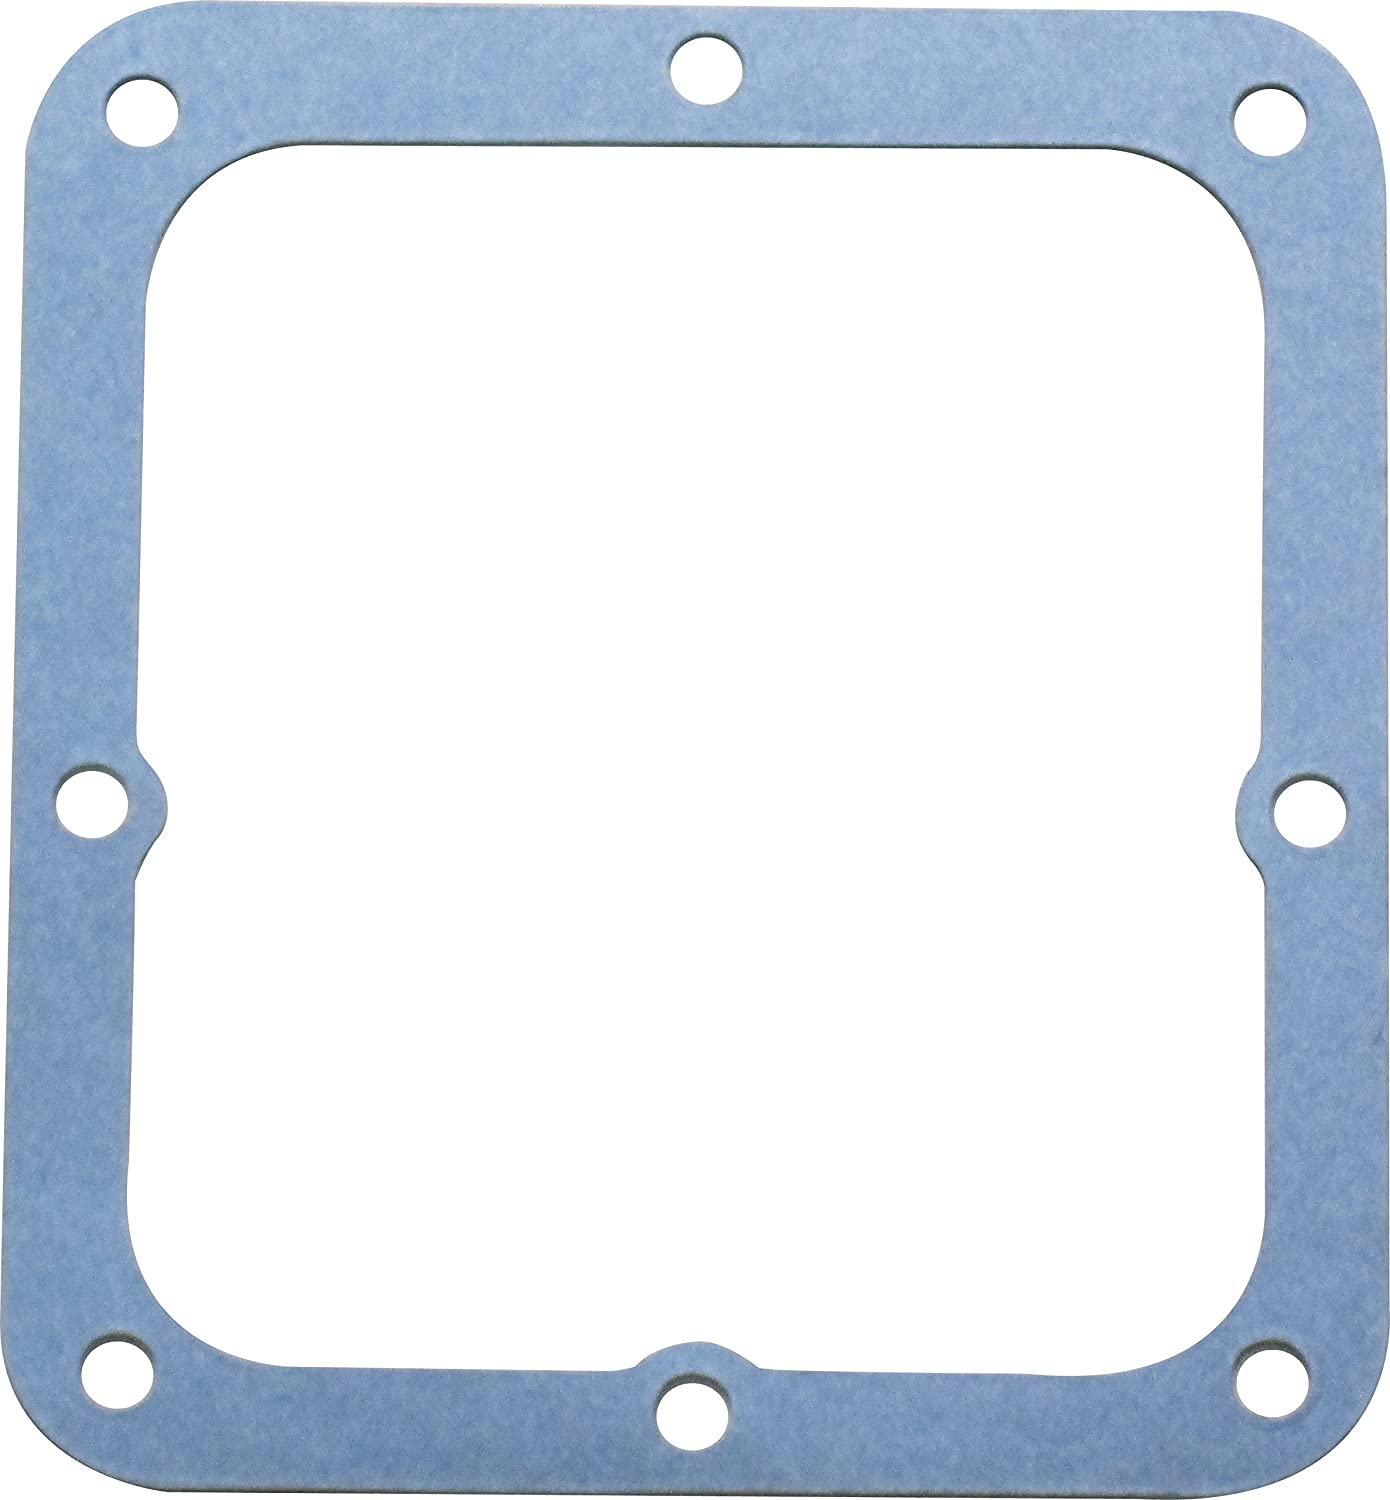 Cheap Hamiltonbobs Premium Quality Transmission Top Shift Gasket IH International... for cheap